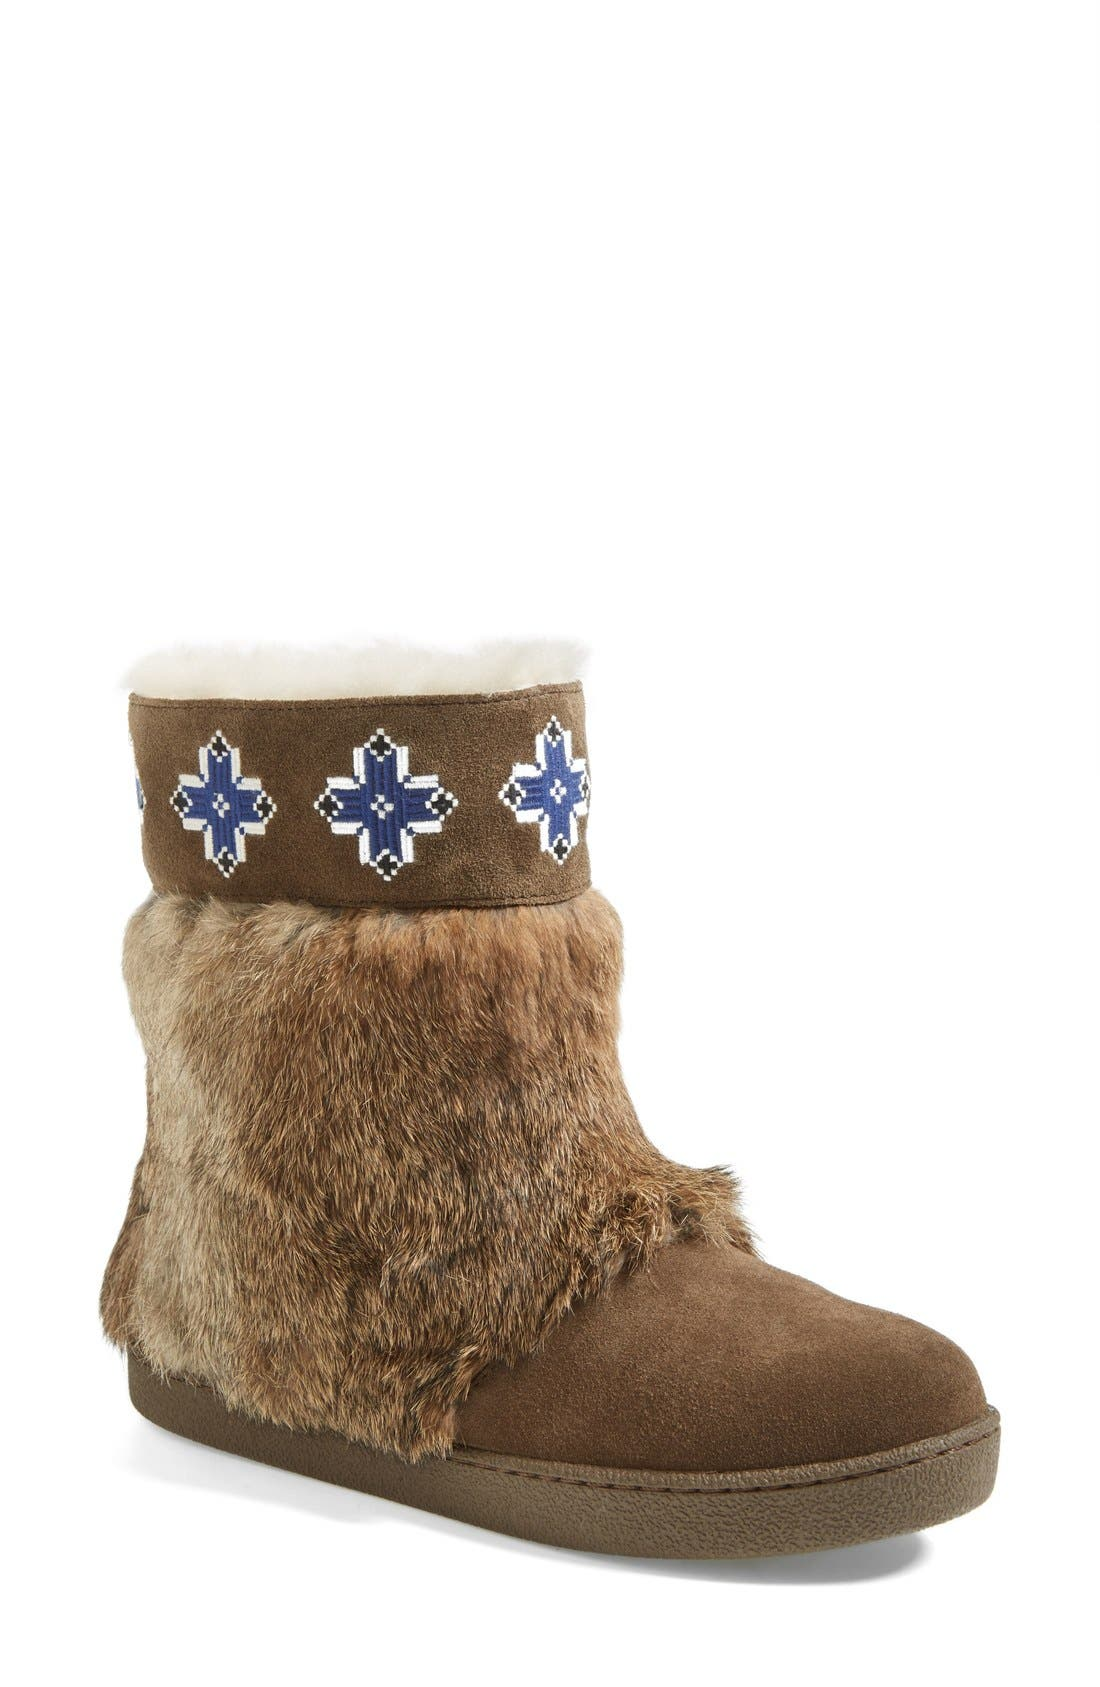 Alternate Image 1 Selected - Tory Burch 'Lafayette' Embroidered Bootie